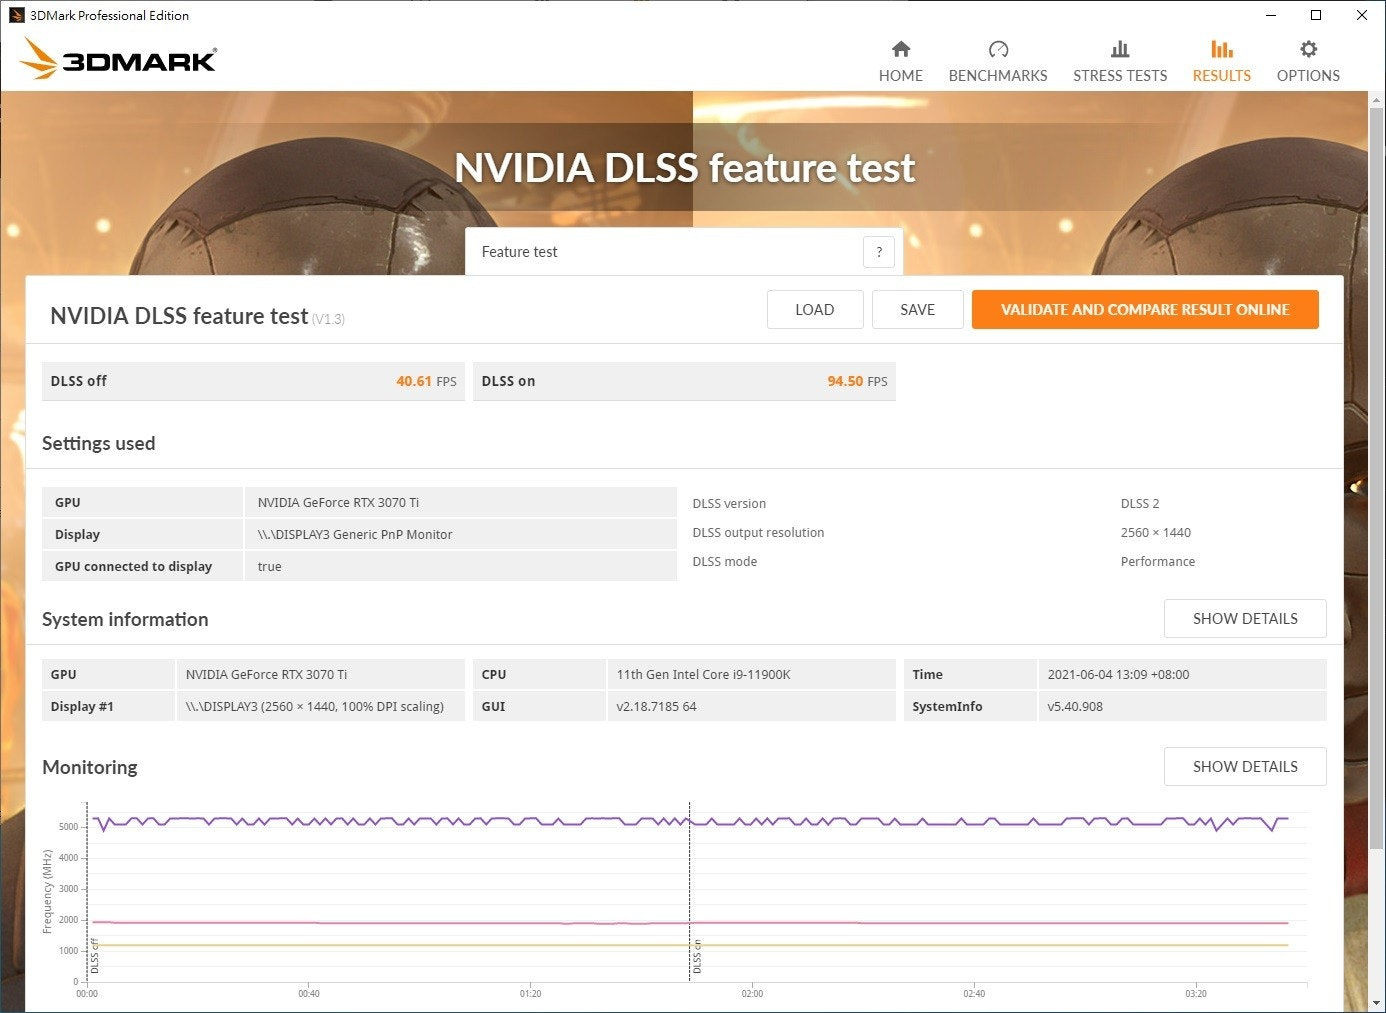 The photos mentioned 3DMark Professional Edition, 3DMARK, НОМЕ, including graphics cards, NVIDIA GeForce RTX, ASUS, computers, and computer hardware